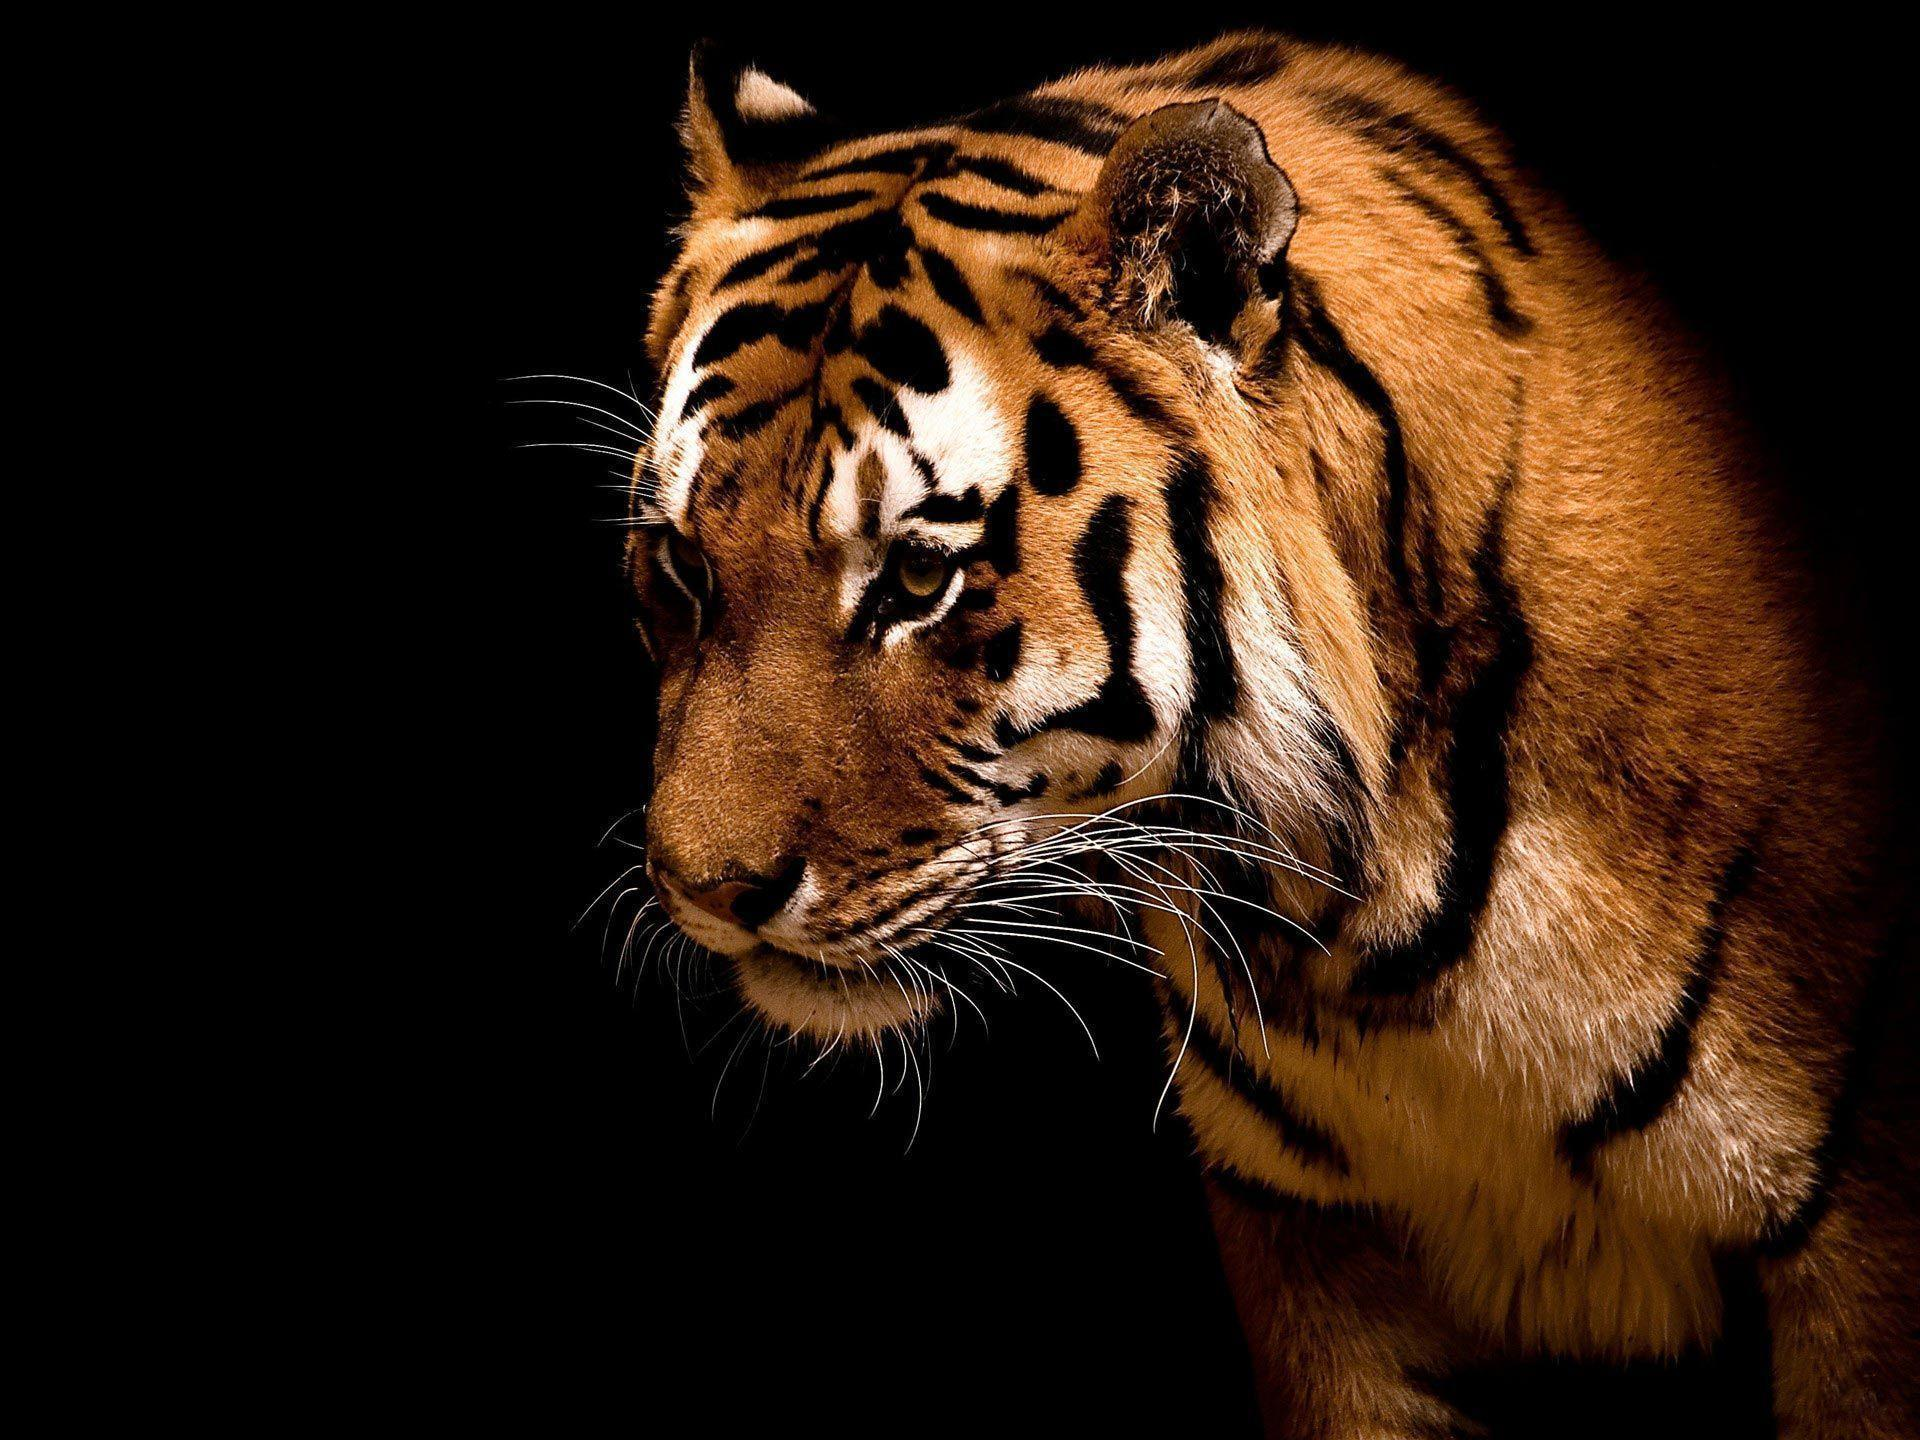 Desktop Windows 7 Tiger Big cat hd Wallpapers